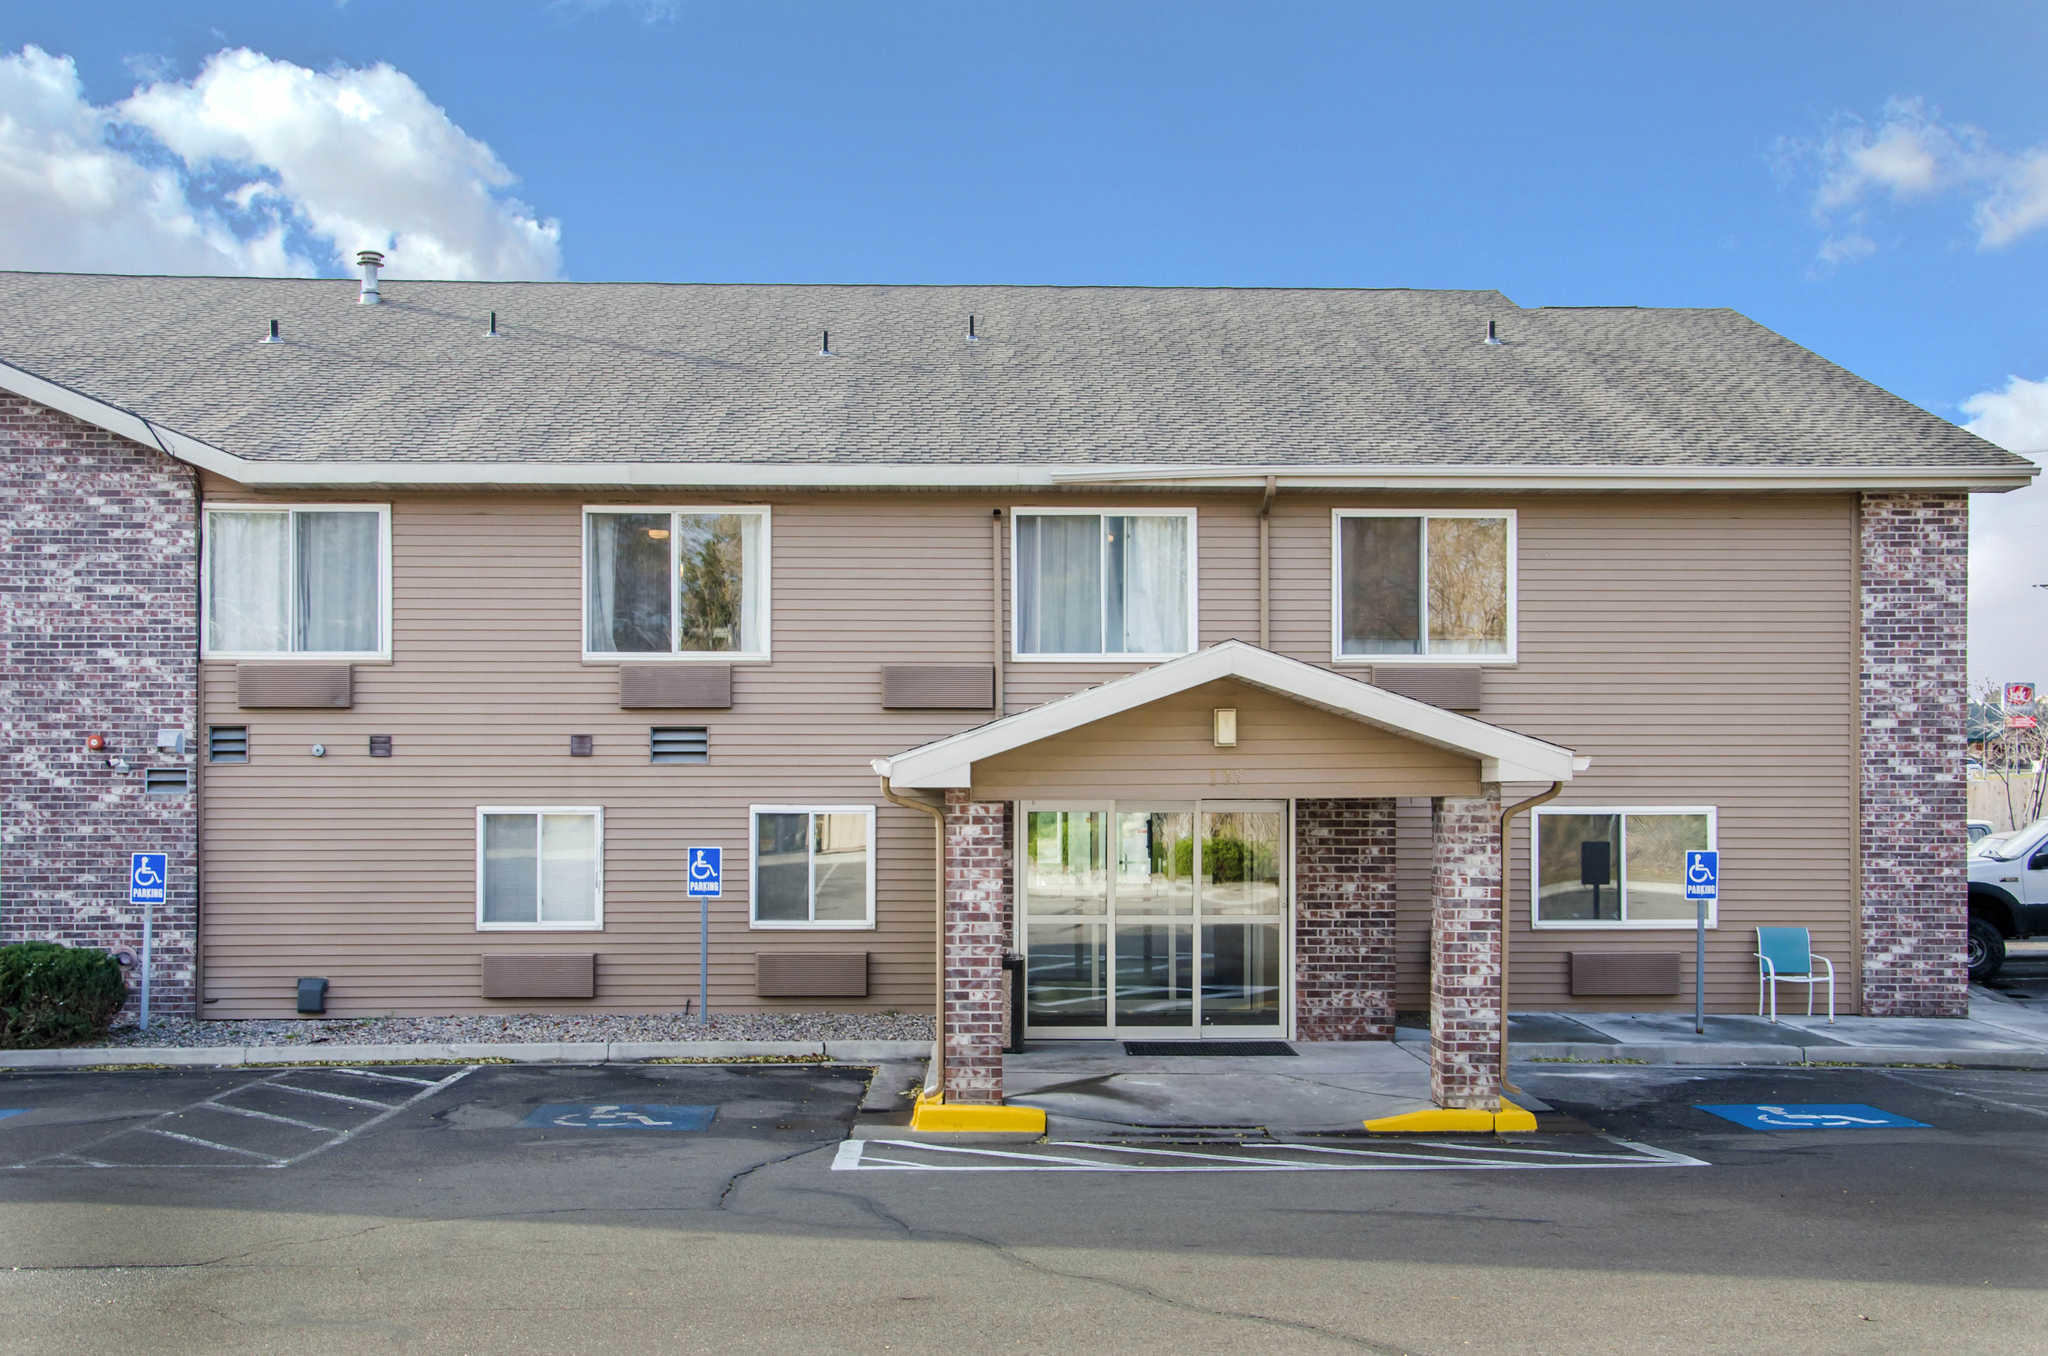 Comfort inn coupons idaho falls id near me 8coupons for Hotels 8 near me